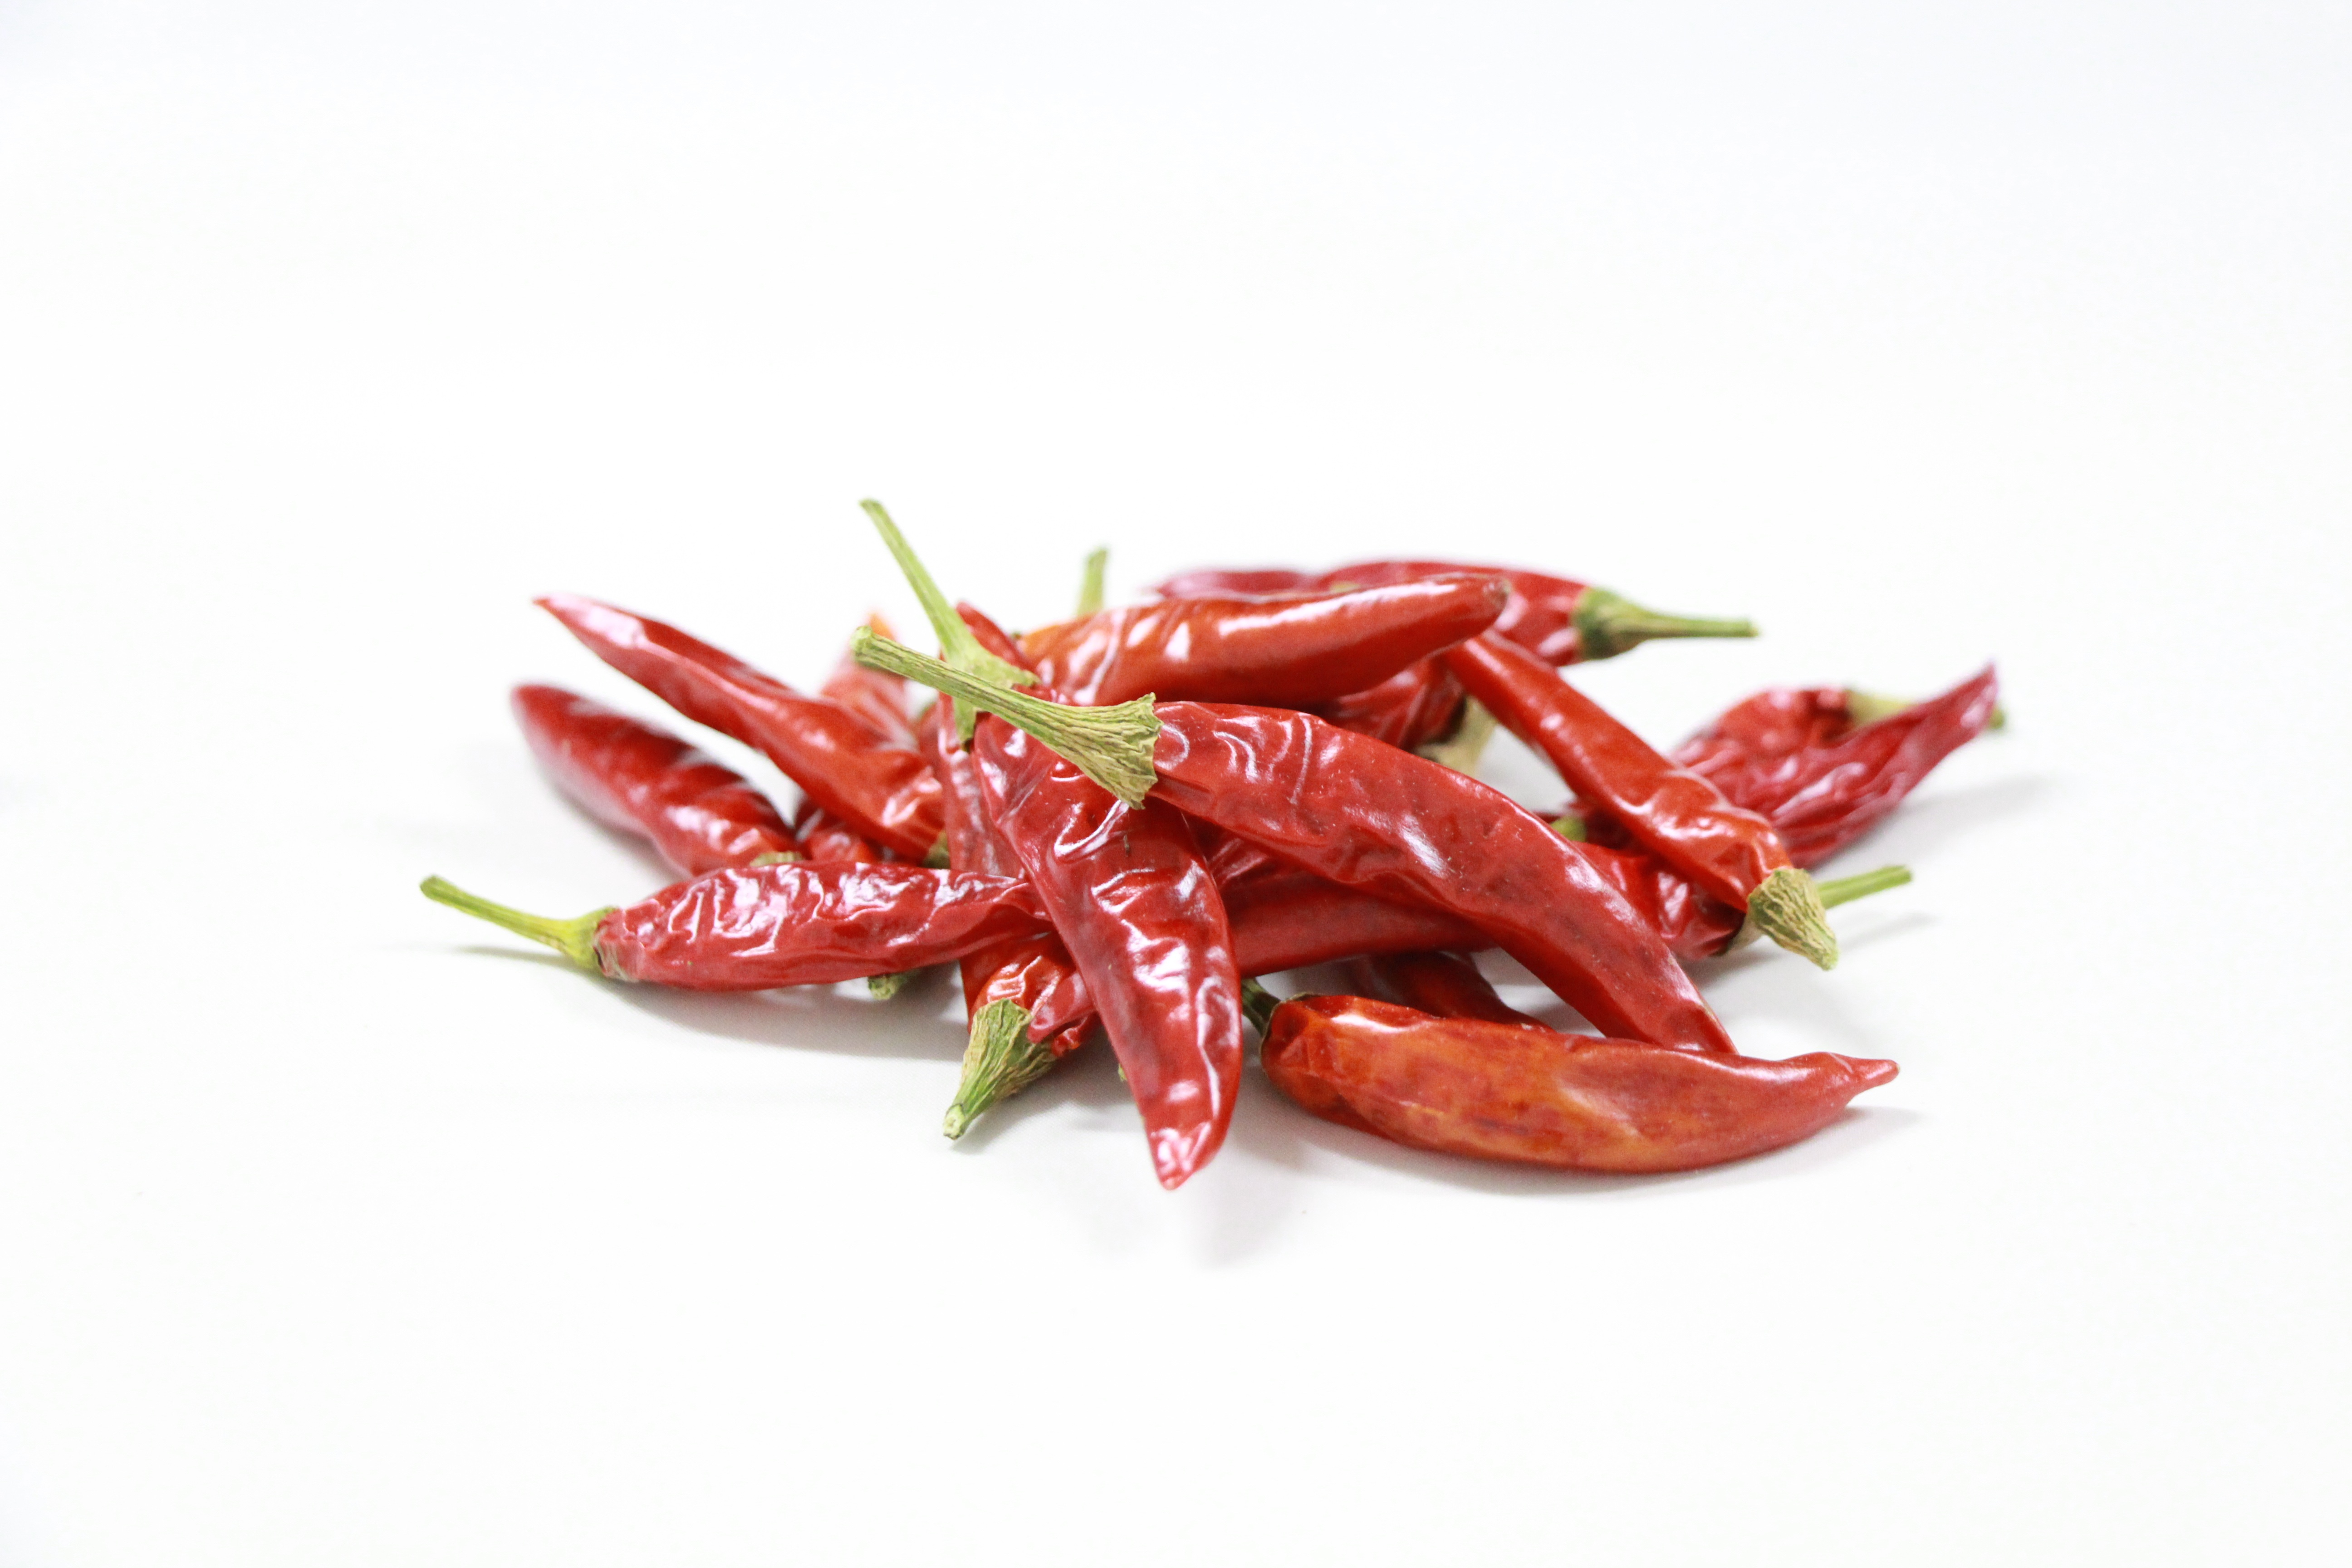 are chili peppers a natural pain reliever?